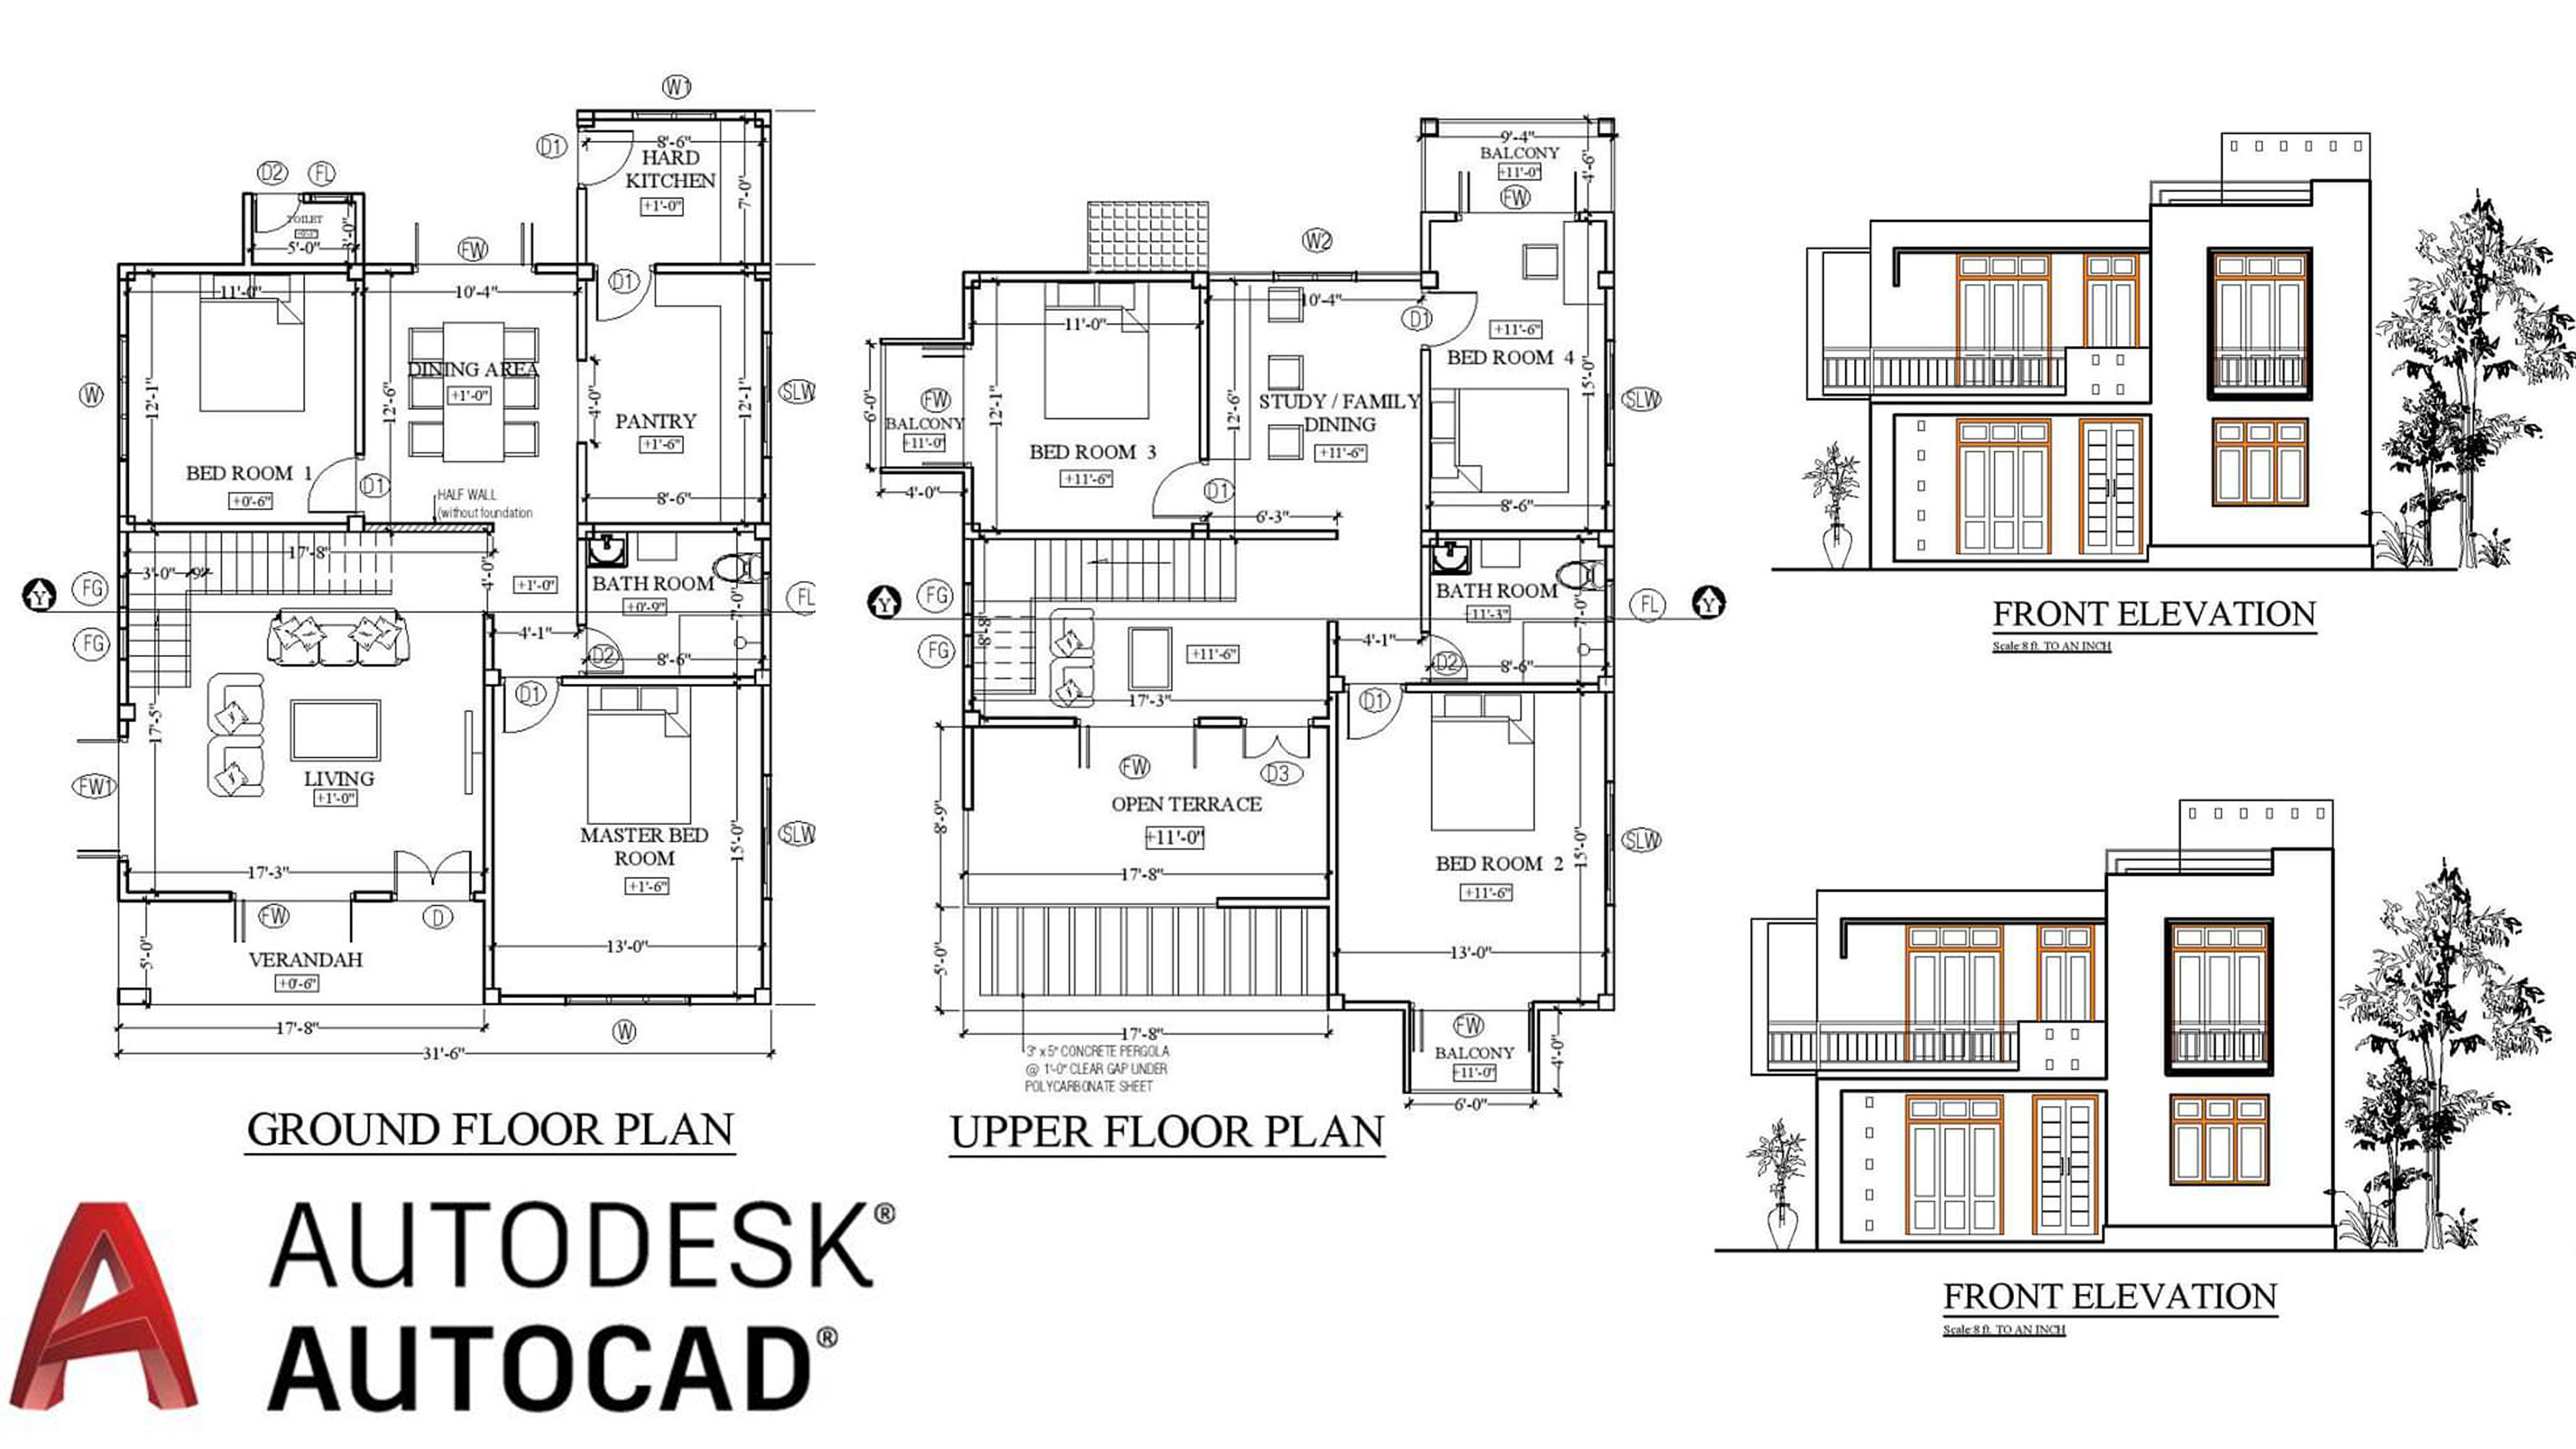 Draw Your Floor Plan Elevation Section And Convert Pdf Or Sketch In Auto Cad By Davidricher94 Fiverr